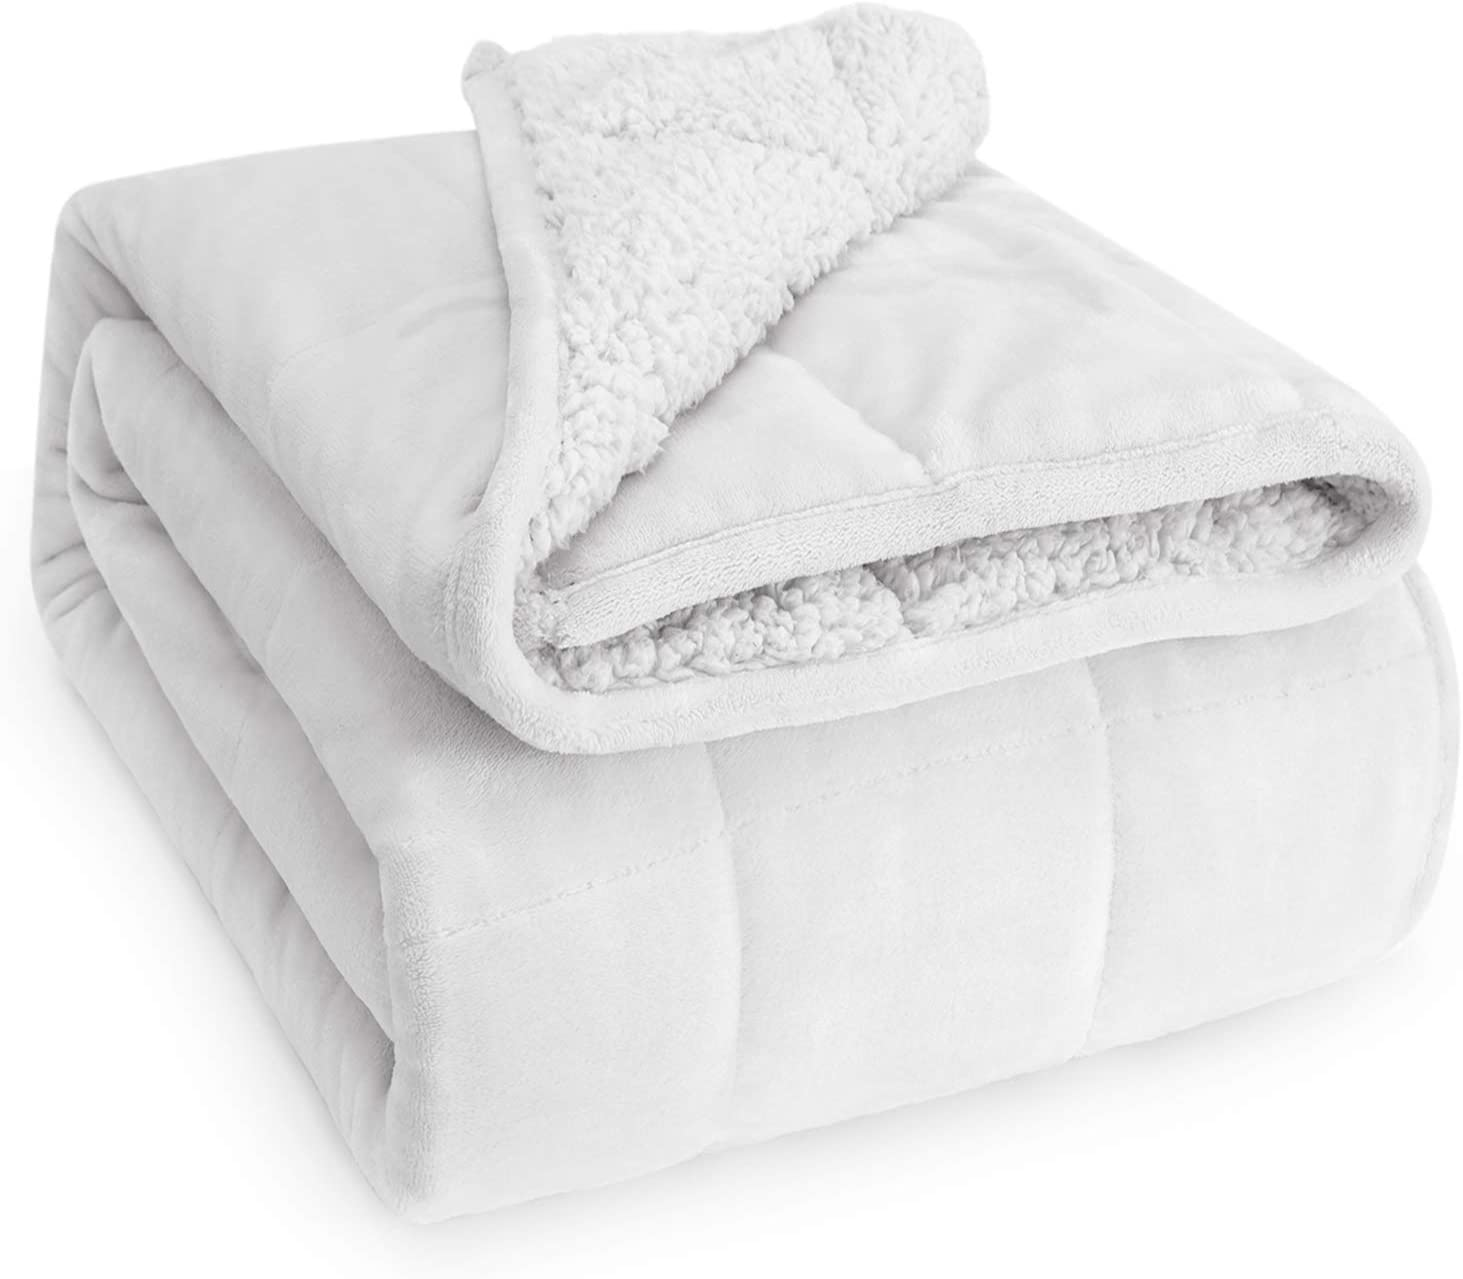 Sivio Sherpa Fleece Weighted Blanket for Adult, 15lbs Heavy Fuzzy Throw Blanket with Soft Plush Flannel, Reversible Twin-Size Super Soft Extra Warm Cozy Fluffy Blanket, 48x72 Inch Dual Sided White